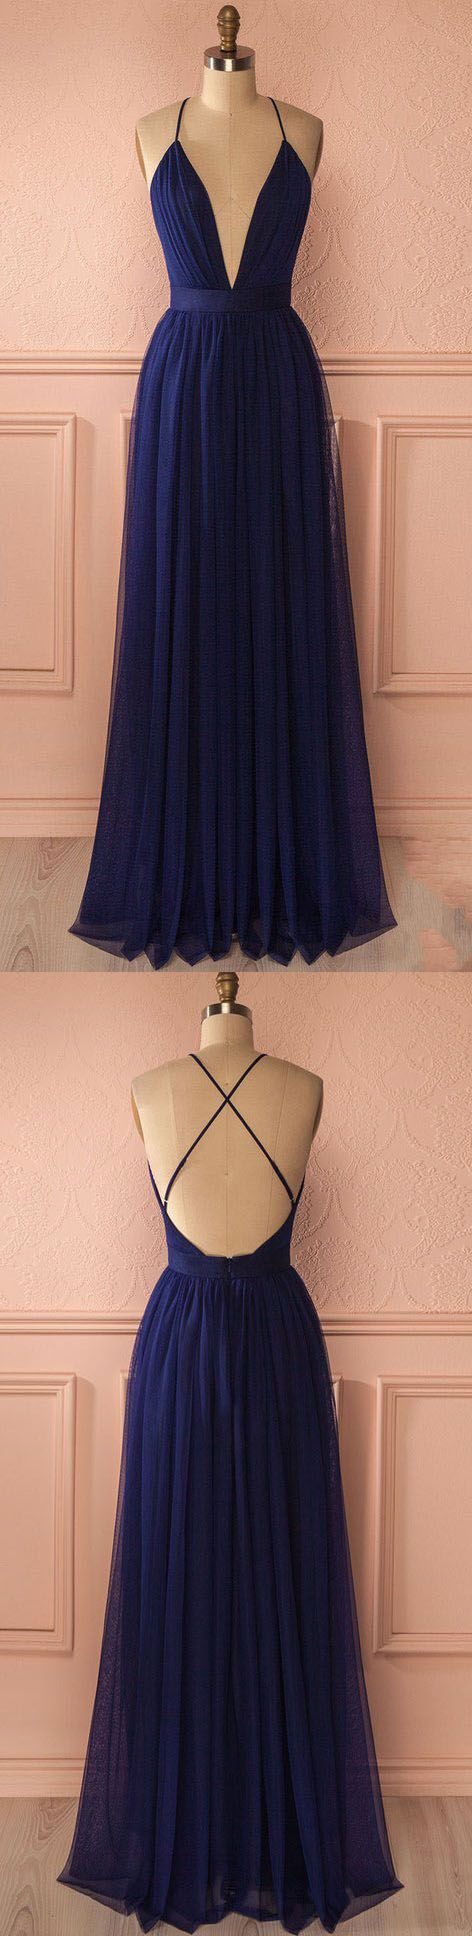 Awesome Navy blue dress with almost no finish touching the ground